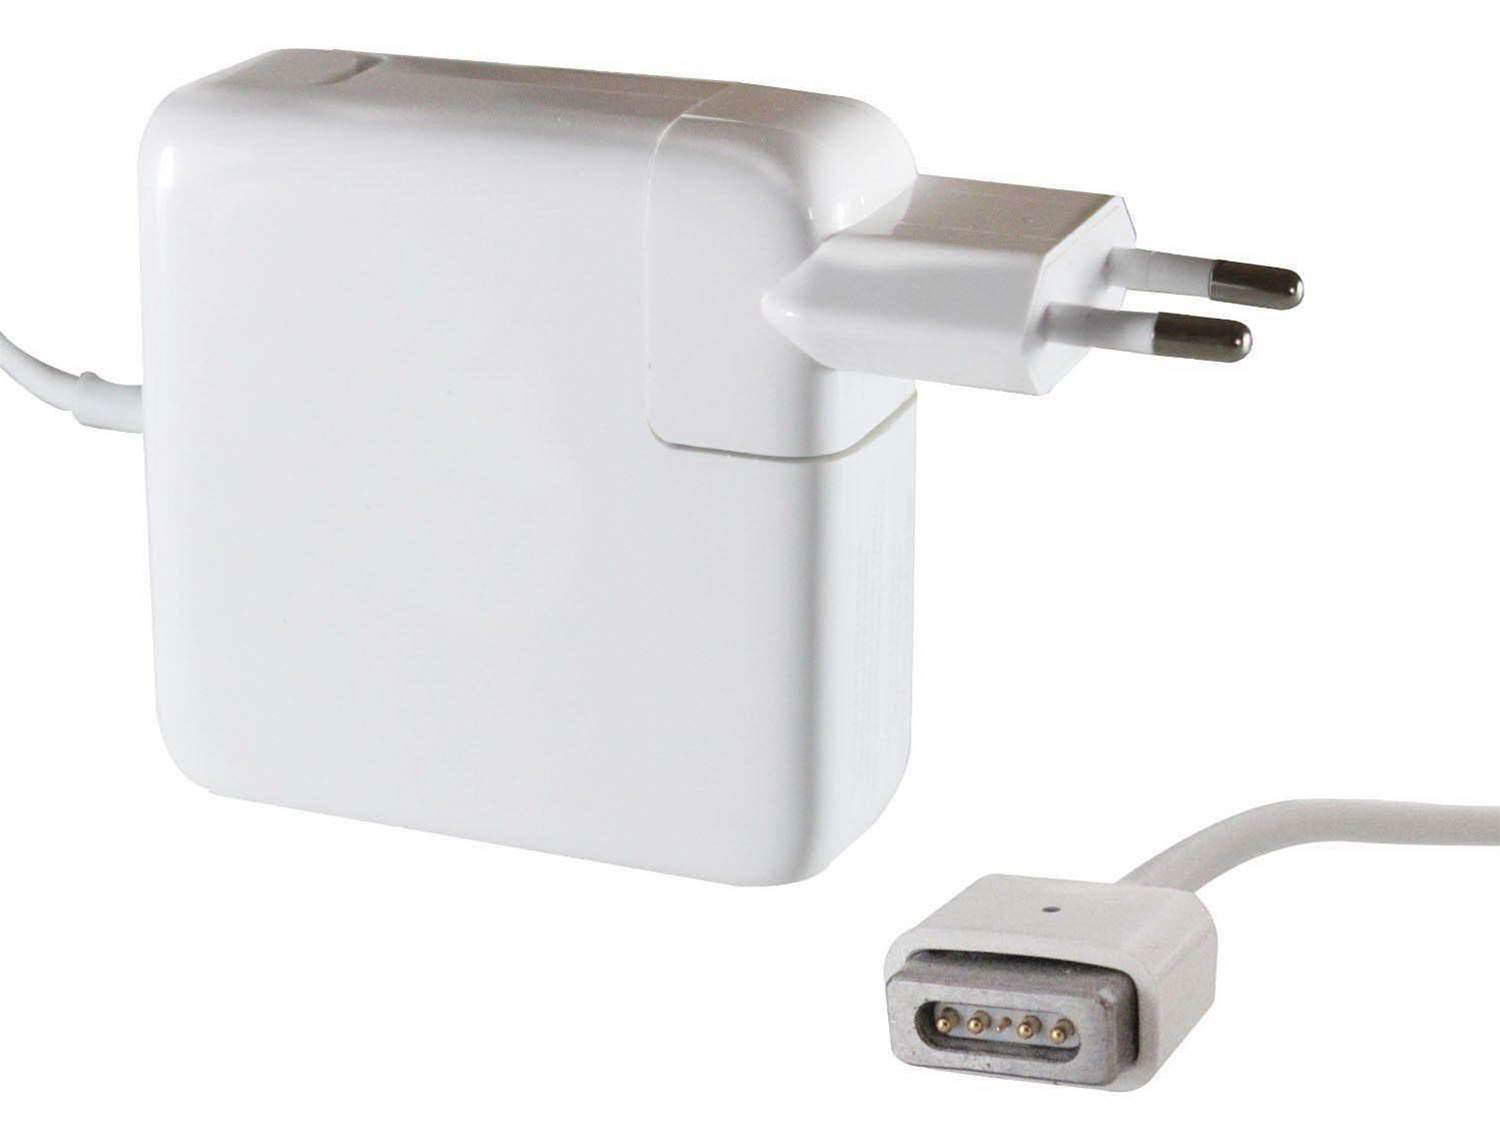 Apple recalls shock-prone travel adaptors